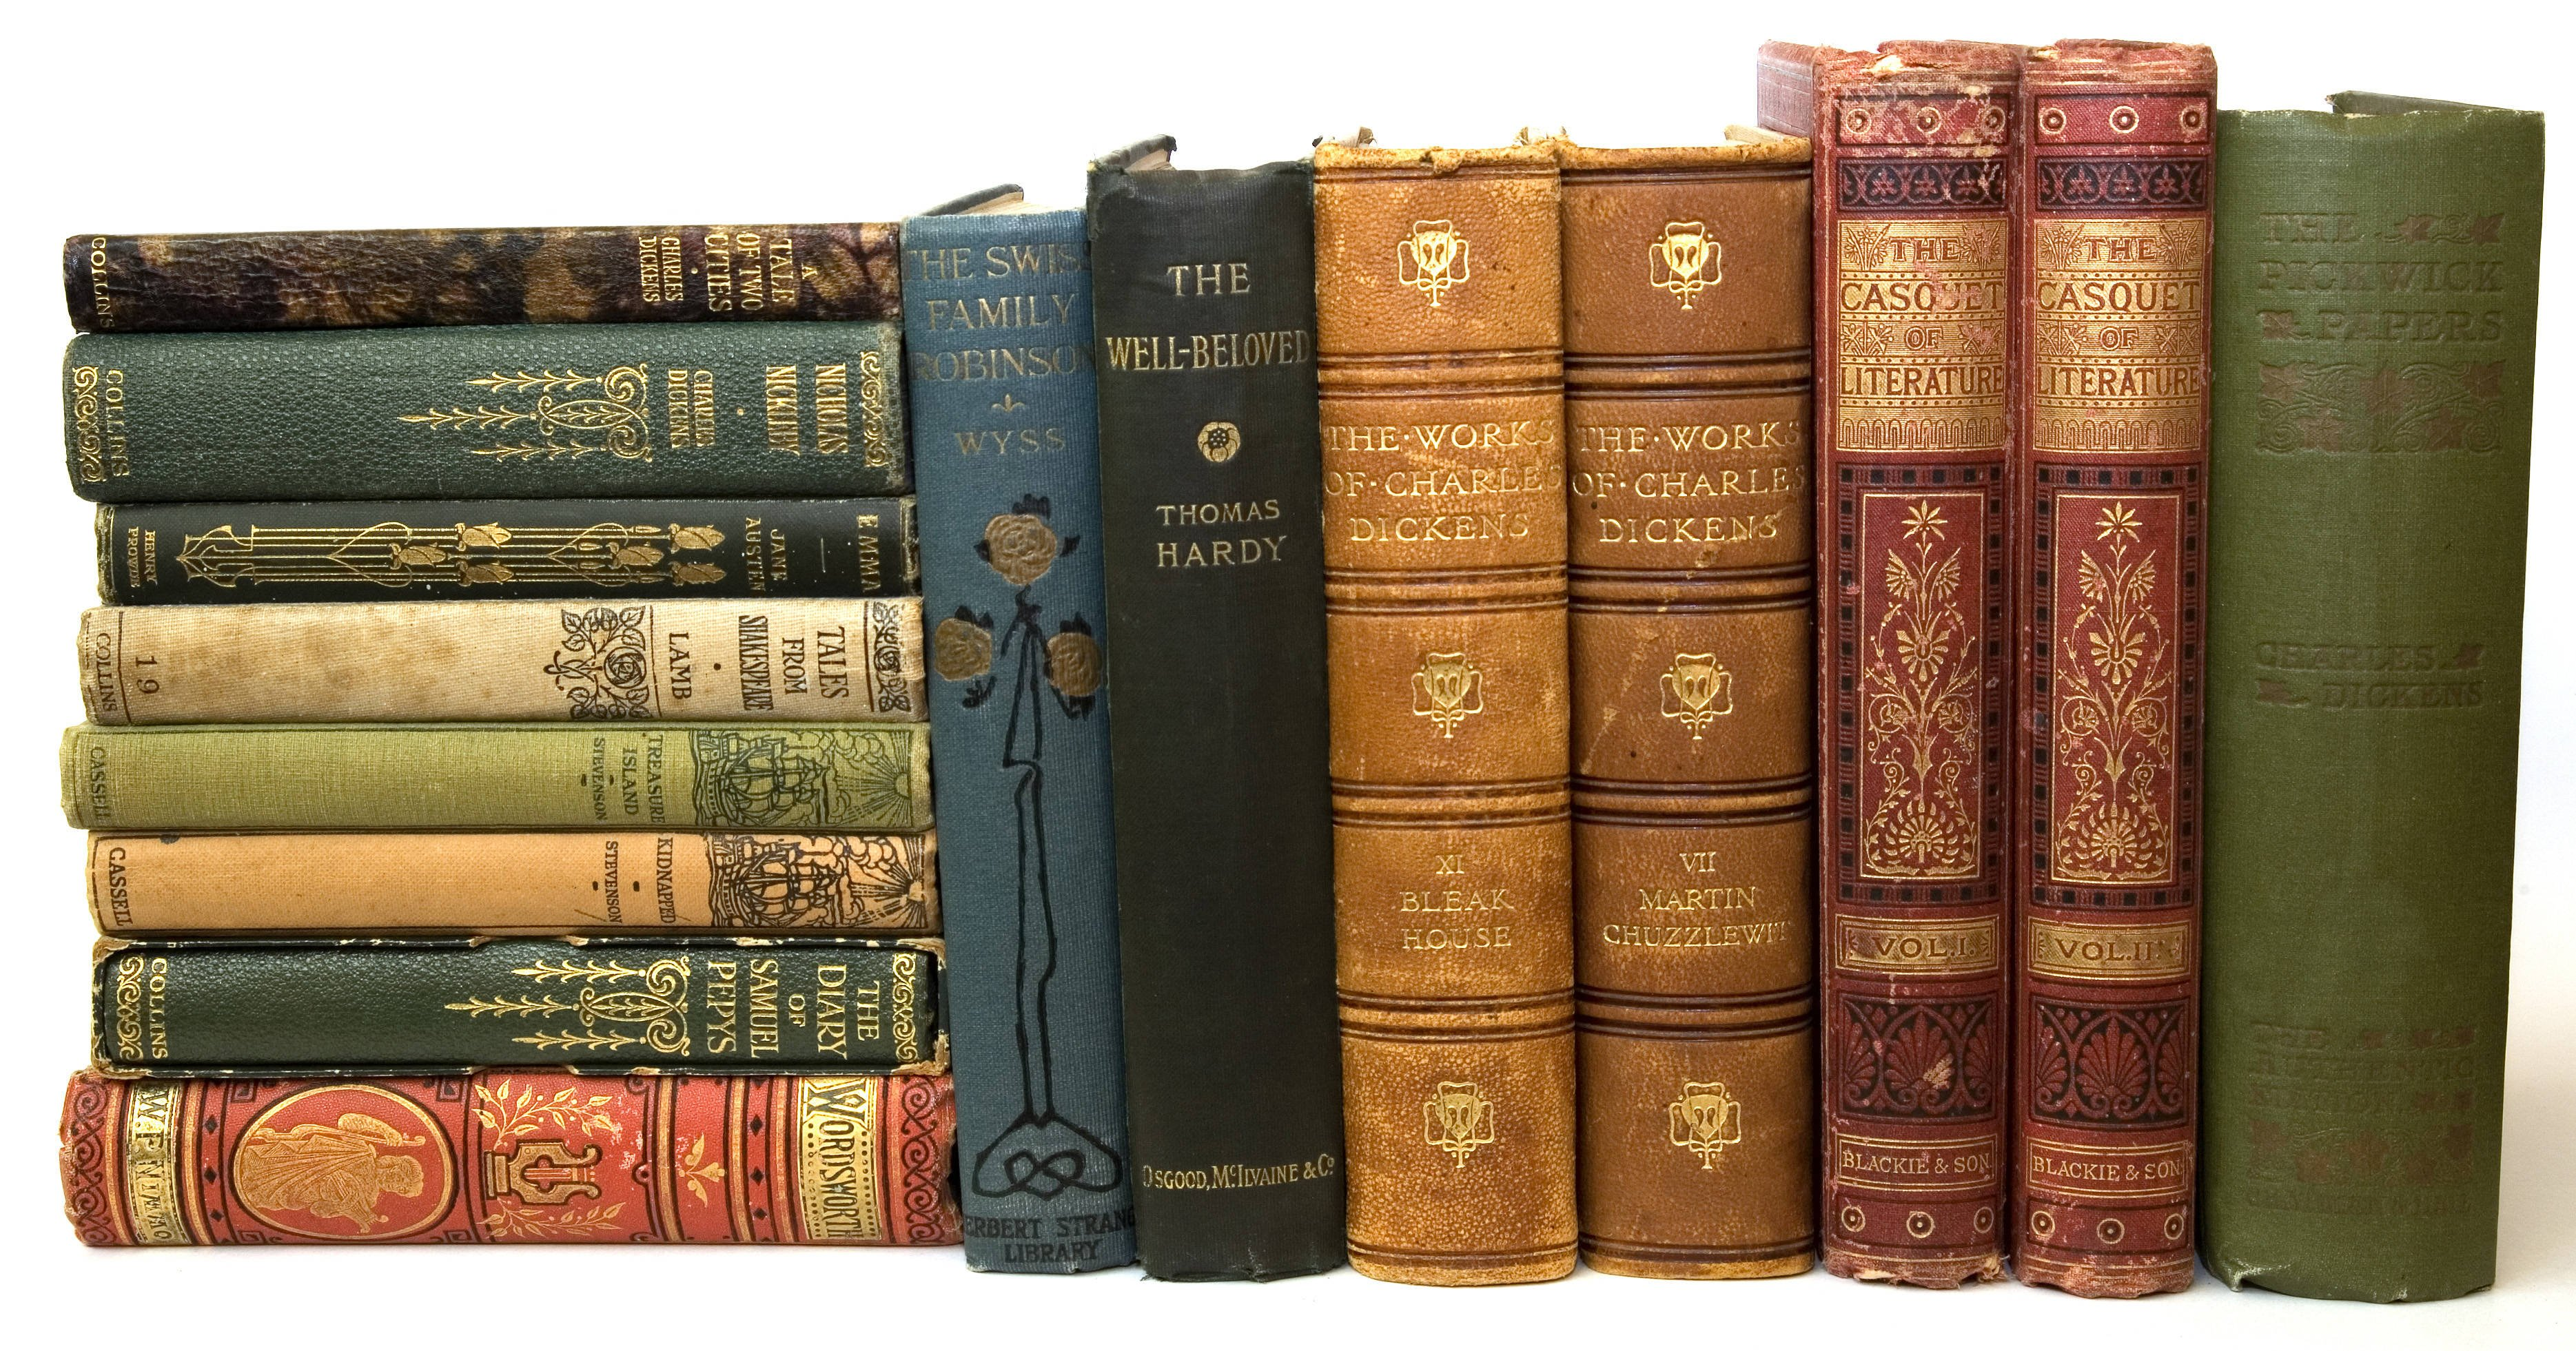 books antique bing antiques wallpapersafari established 1954 imprint searched alfred knopf imgarcade publishing description wallpapers